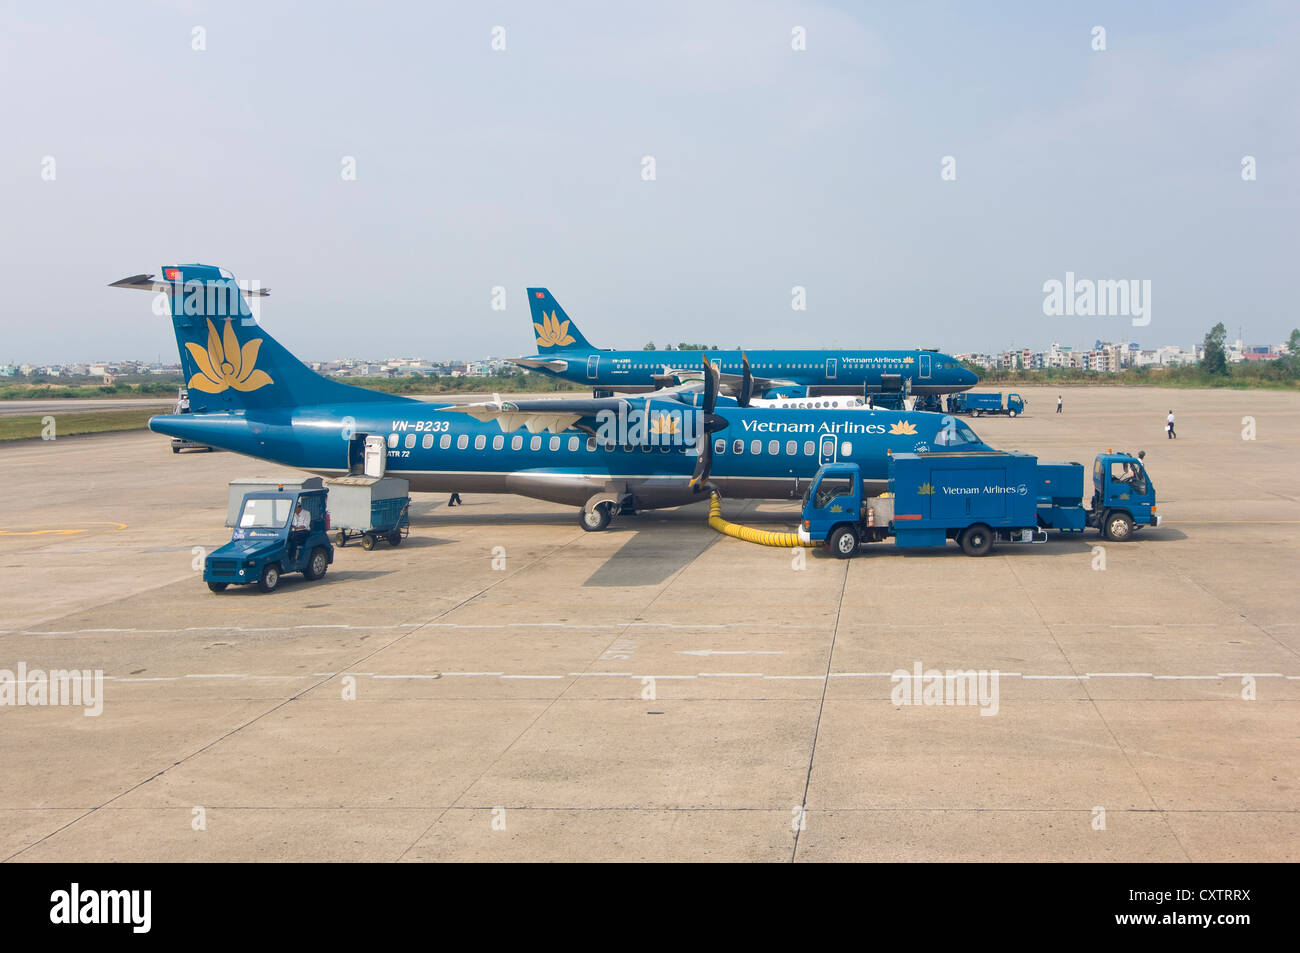 Image result for image of Vietnam Airlines